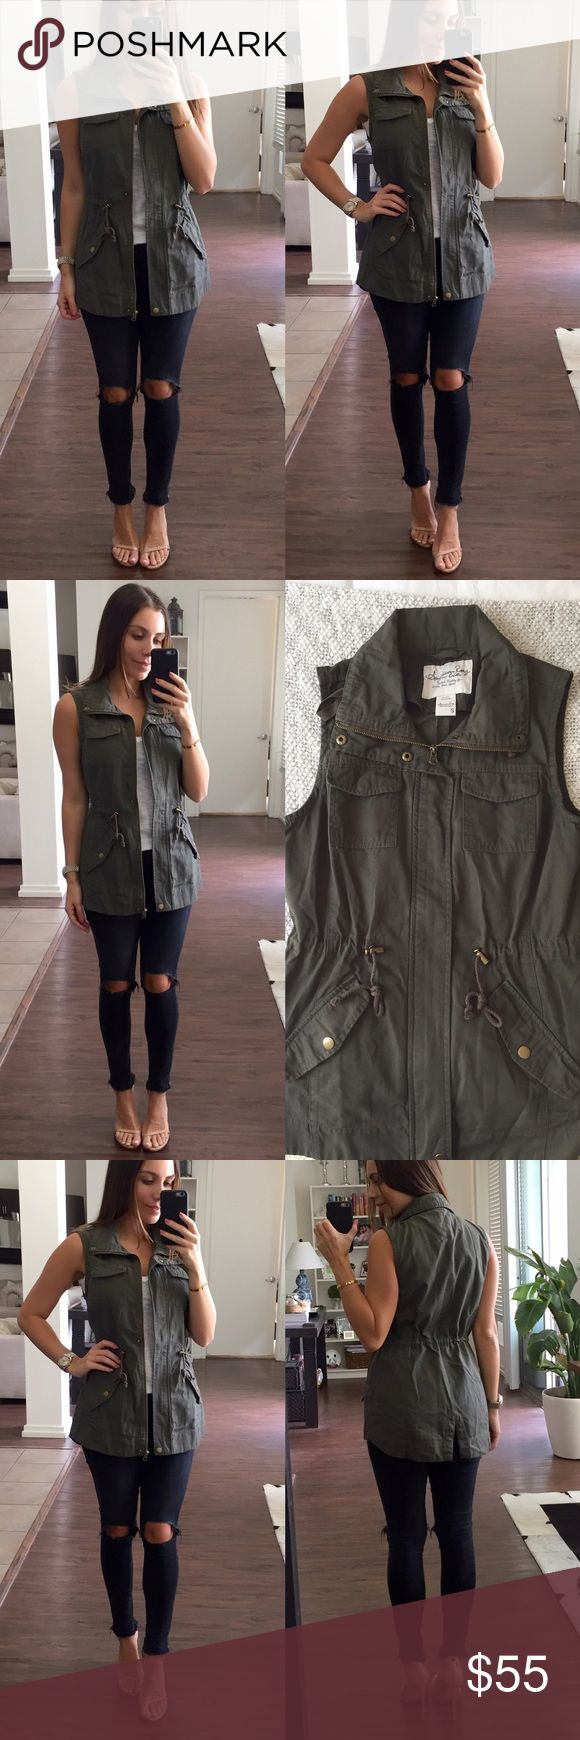 Utility Vest Military green sleeveless vest. This is a great piece to wear over a plain tee, a sweater or even over a basic dress. Brand new with tags Jackets & Coats Utility Jackets